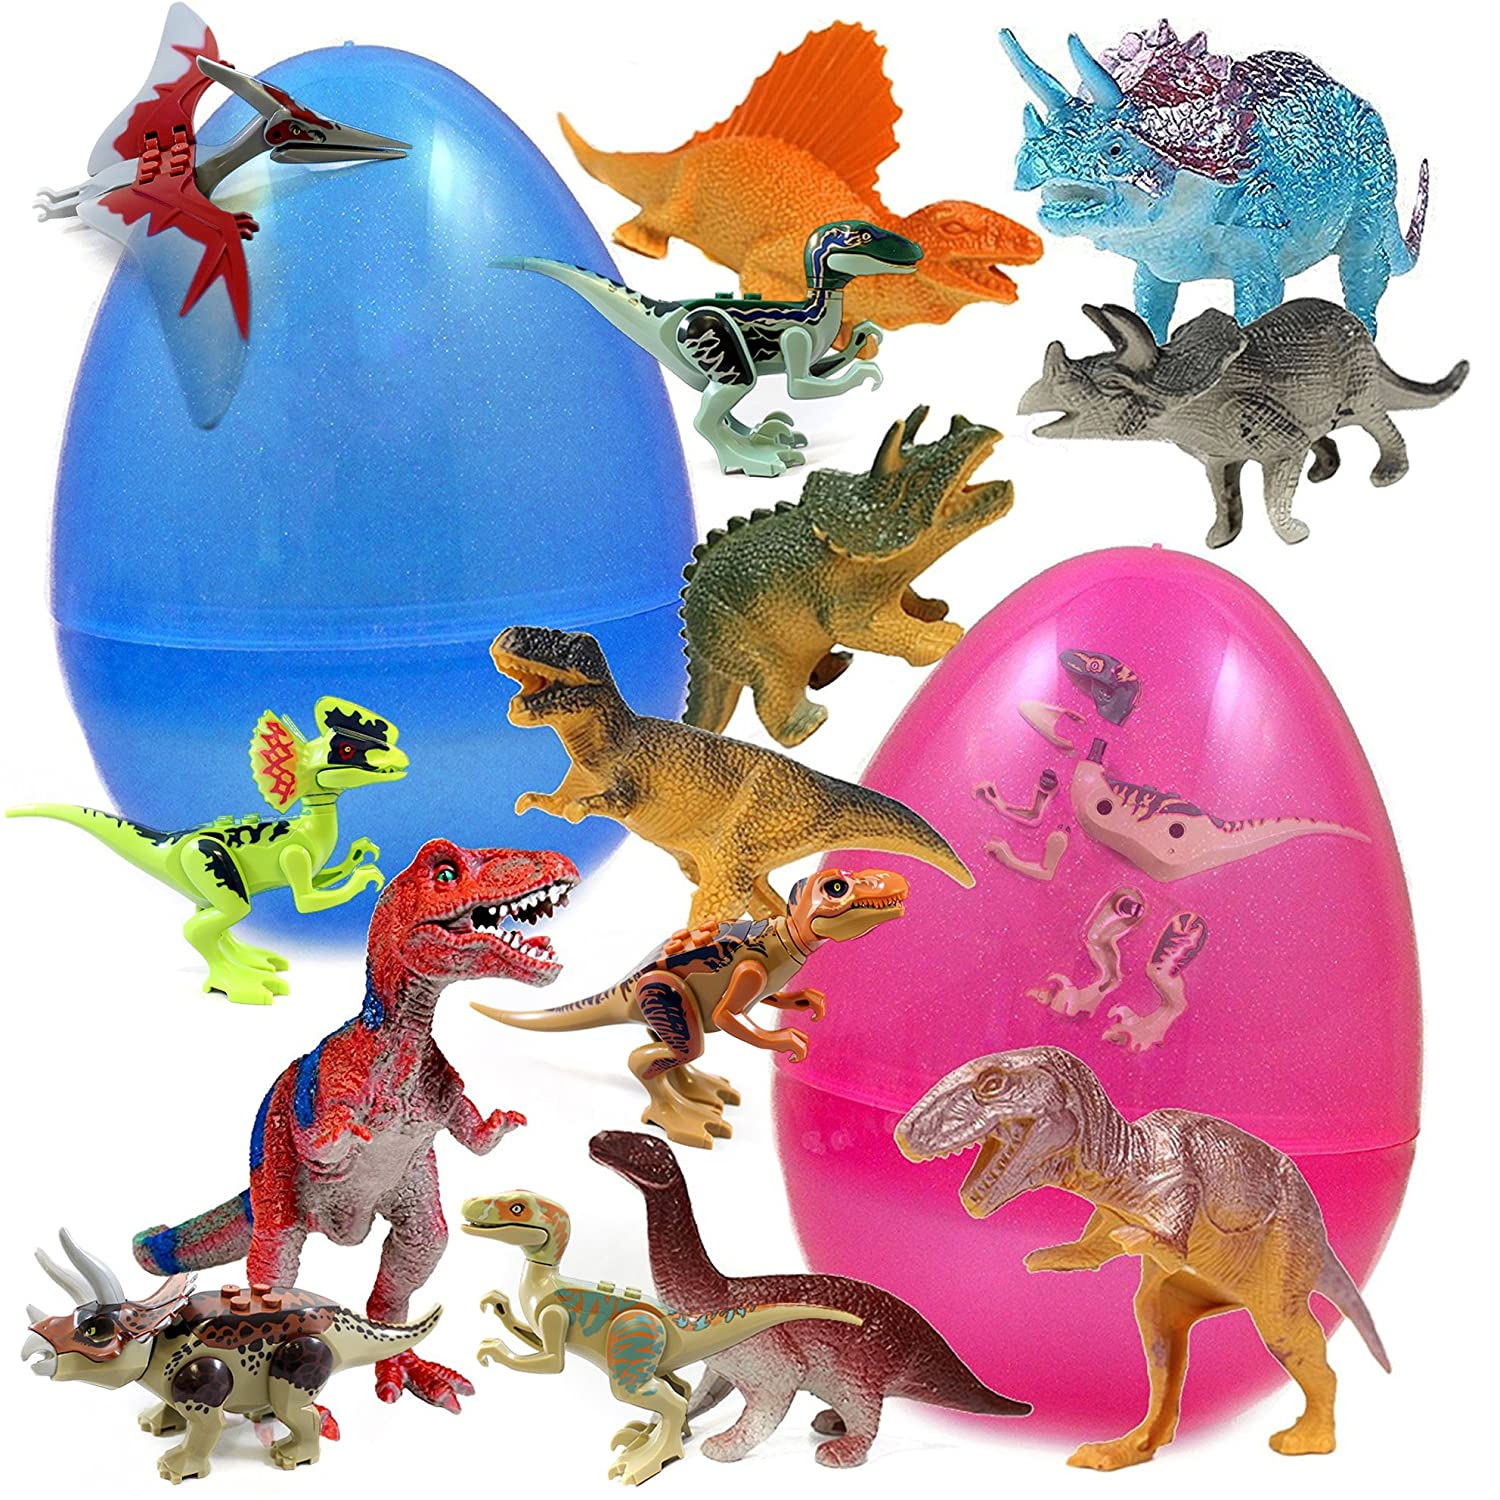 Durable Toys and High-Quality Prefilled Egg Moana Great Party Favors Dinosaur Baken 24 Figurines Toy Filled Jumbo Easter Egg Assorted Fun Characters Zootopia and More Trolls